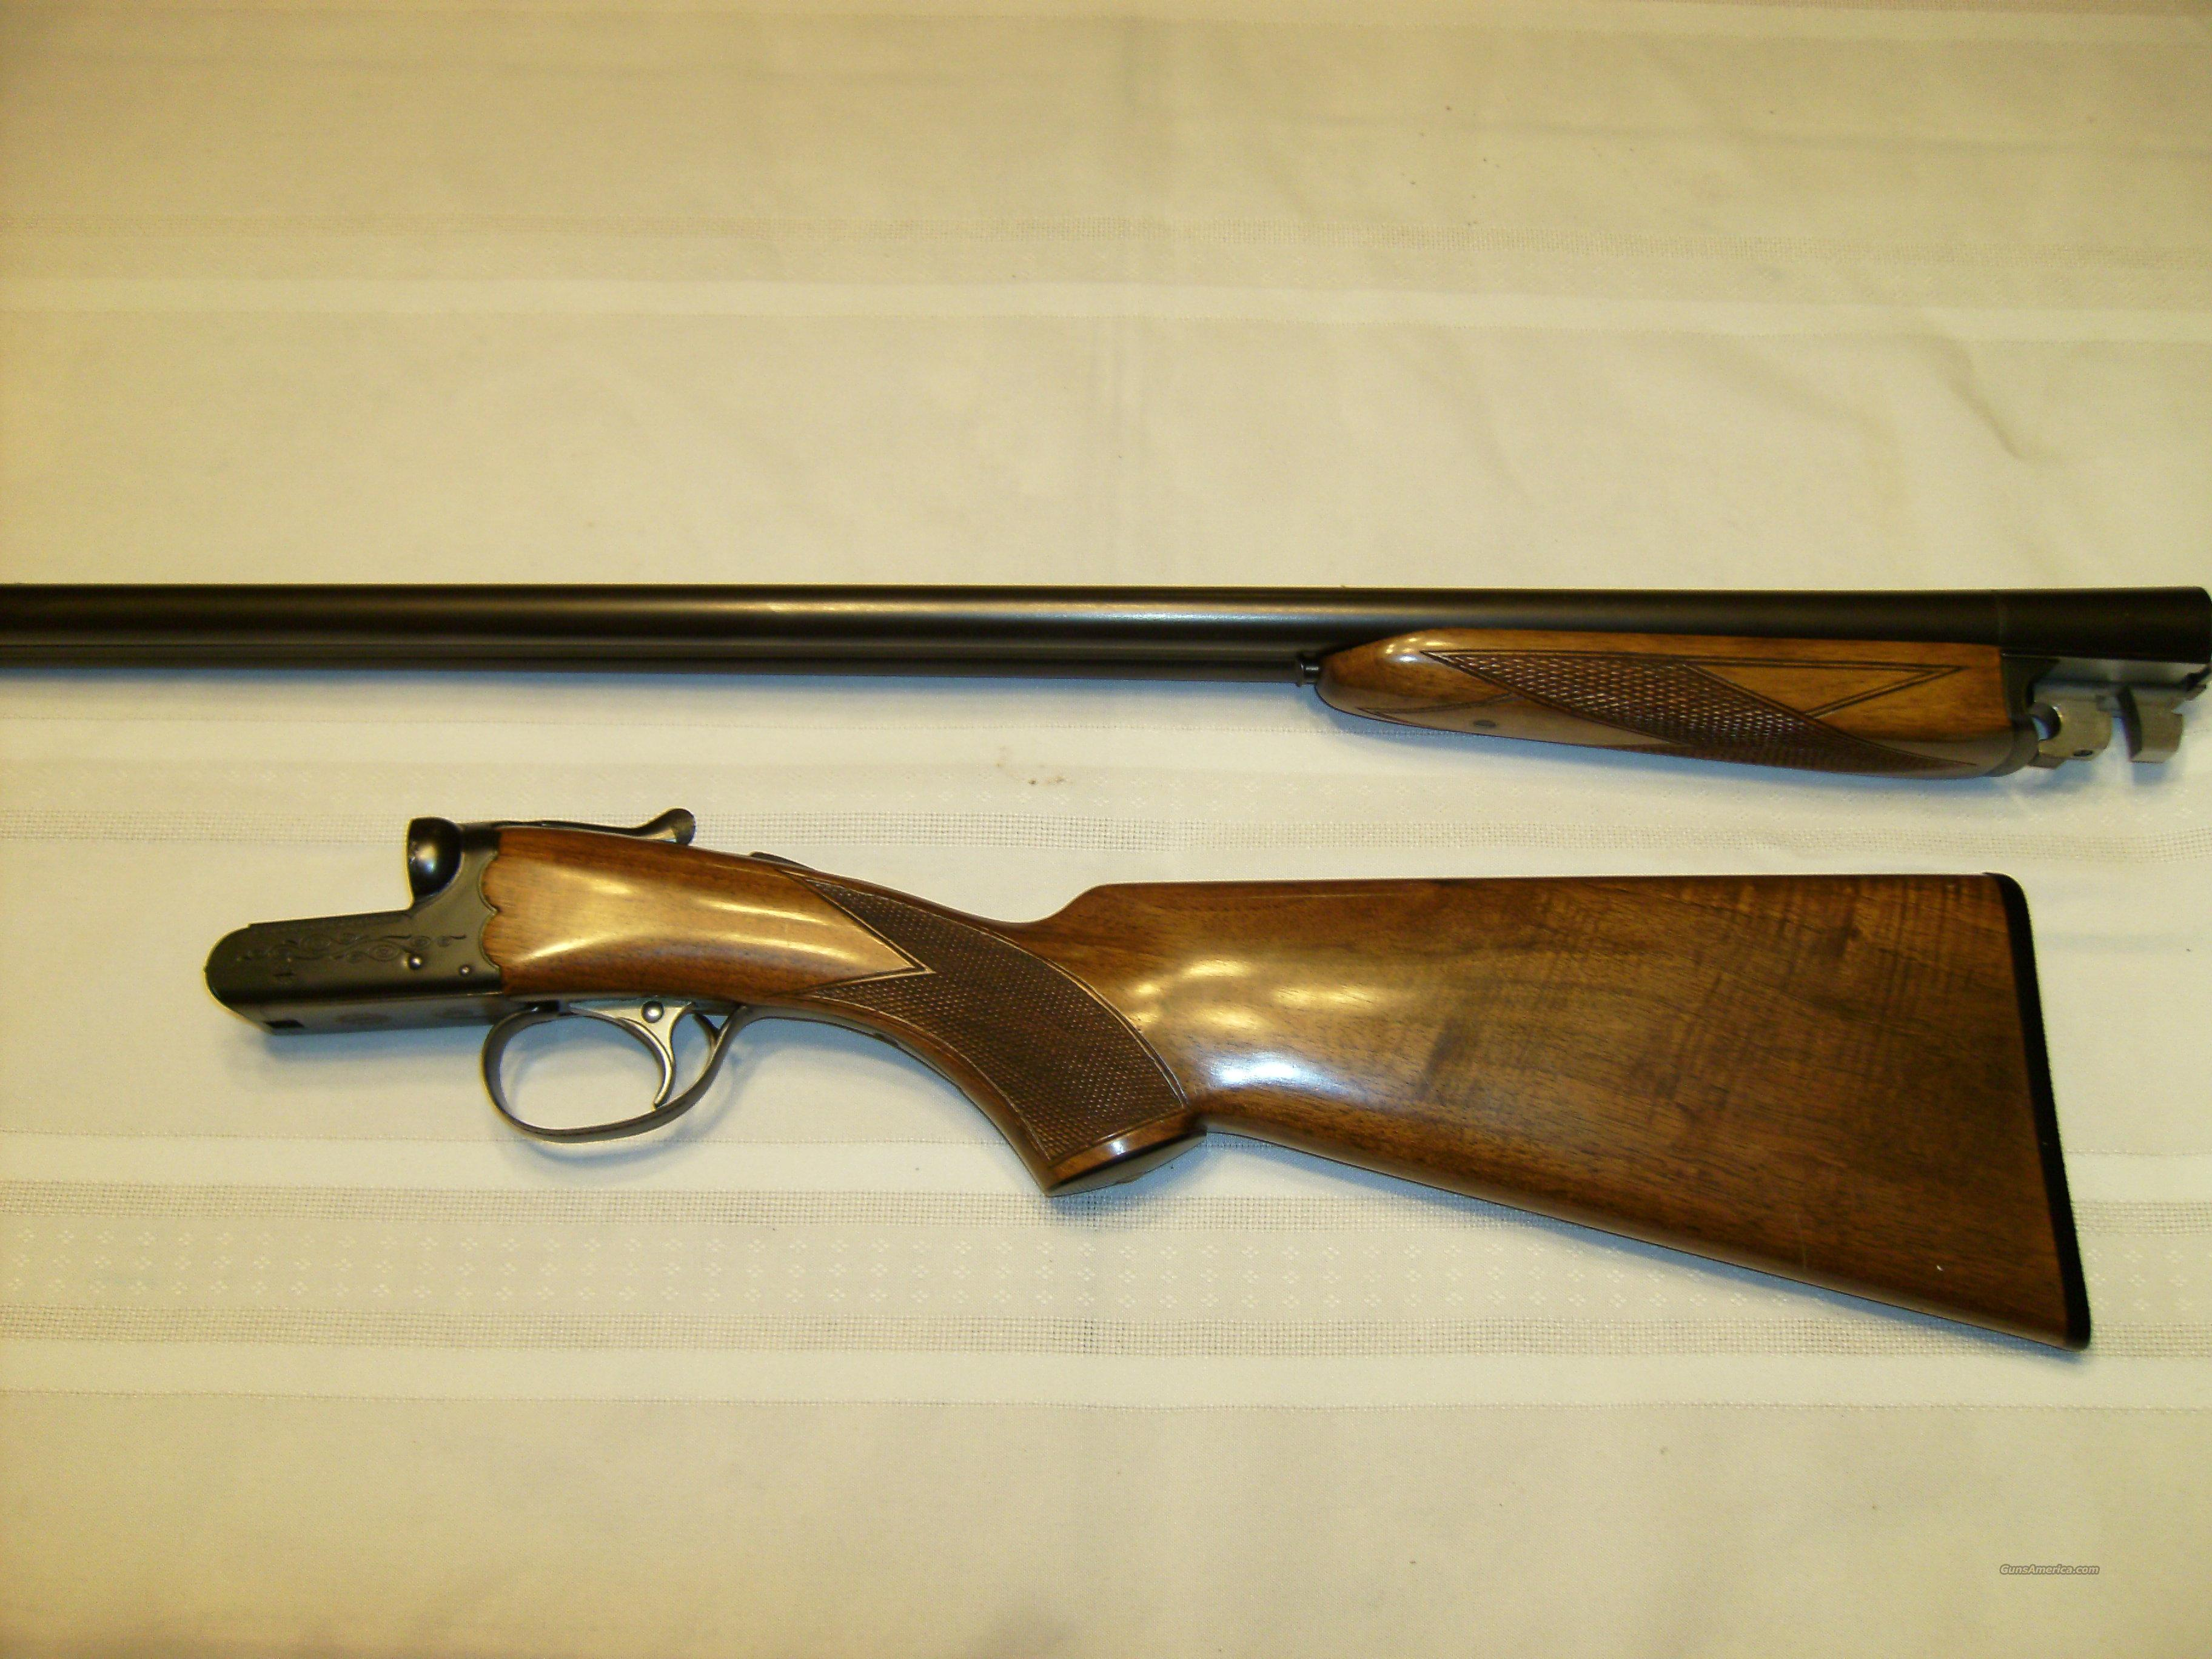 SKB Model 100  Guns > Shotguns > SKB Shotguns > Hunting